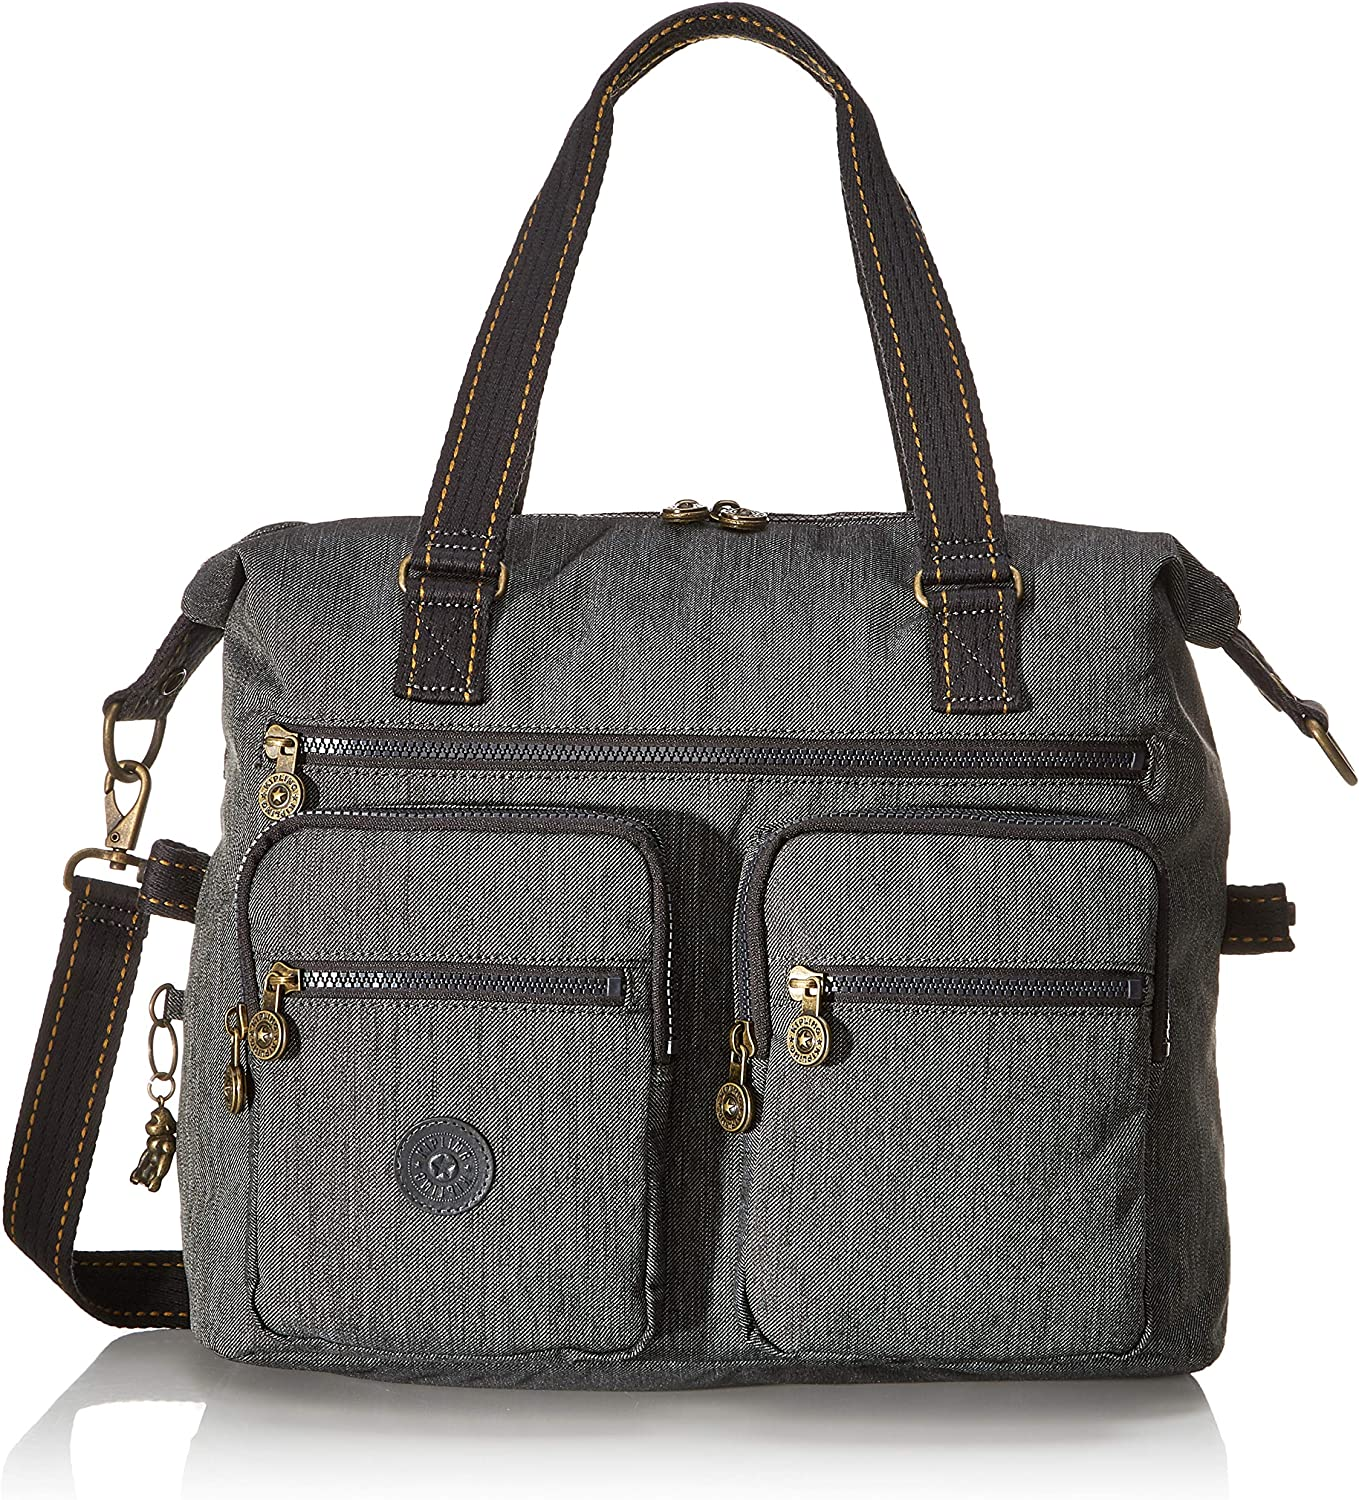 Kipling New Erasto Luggage 17 L Black Indigo: